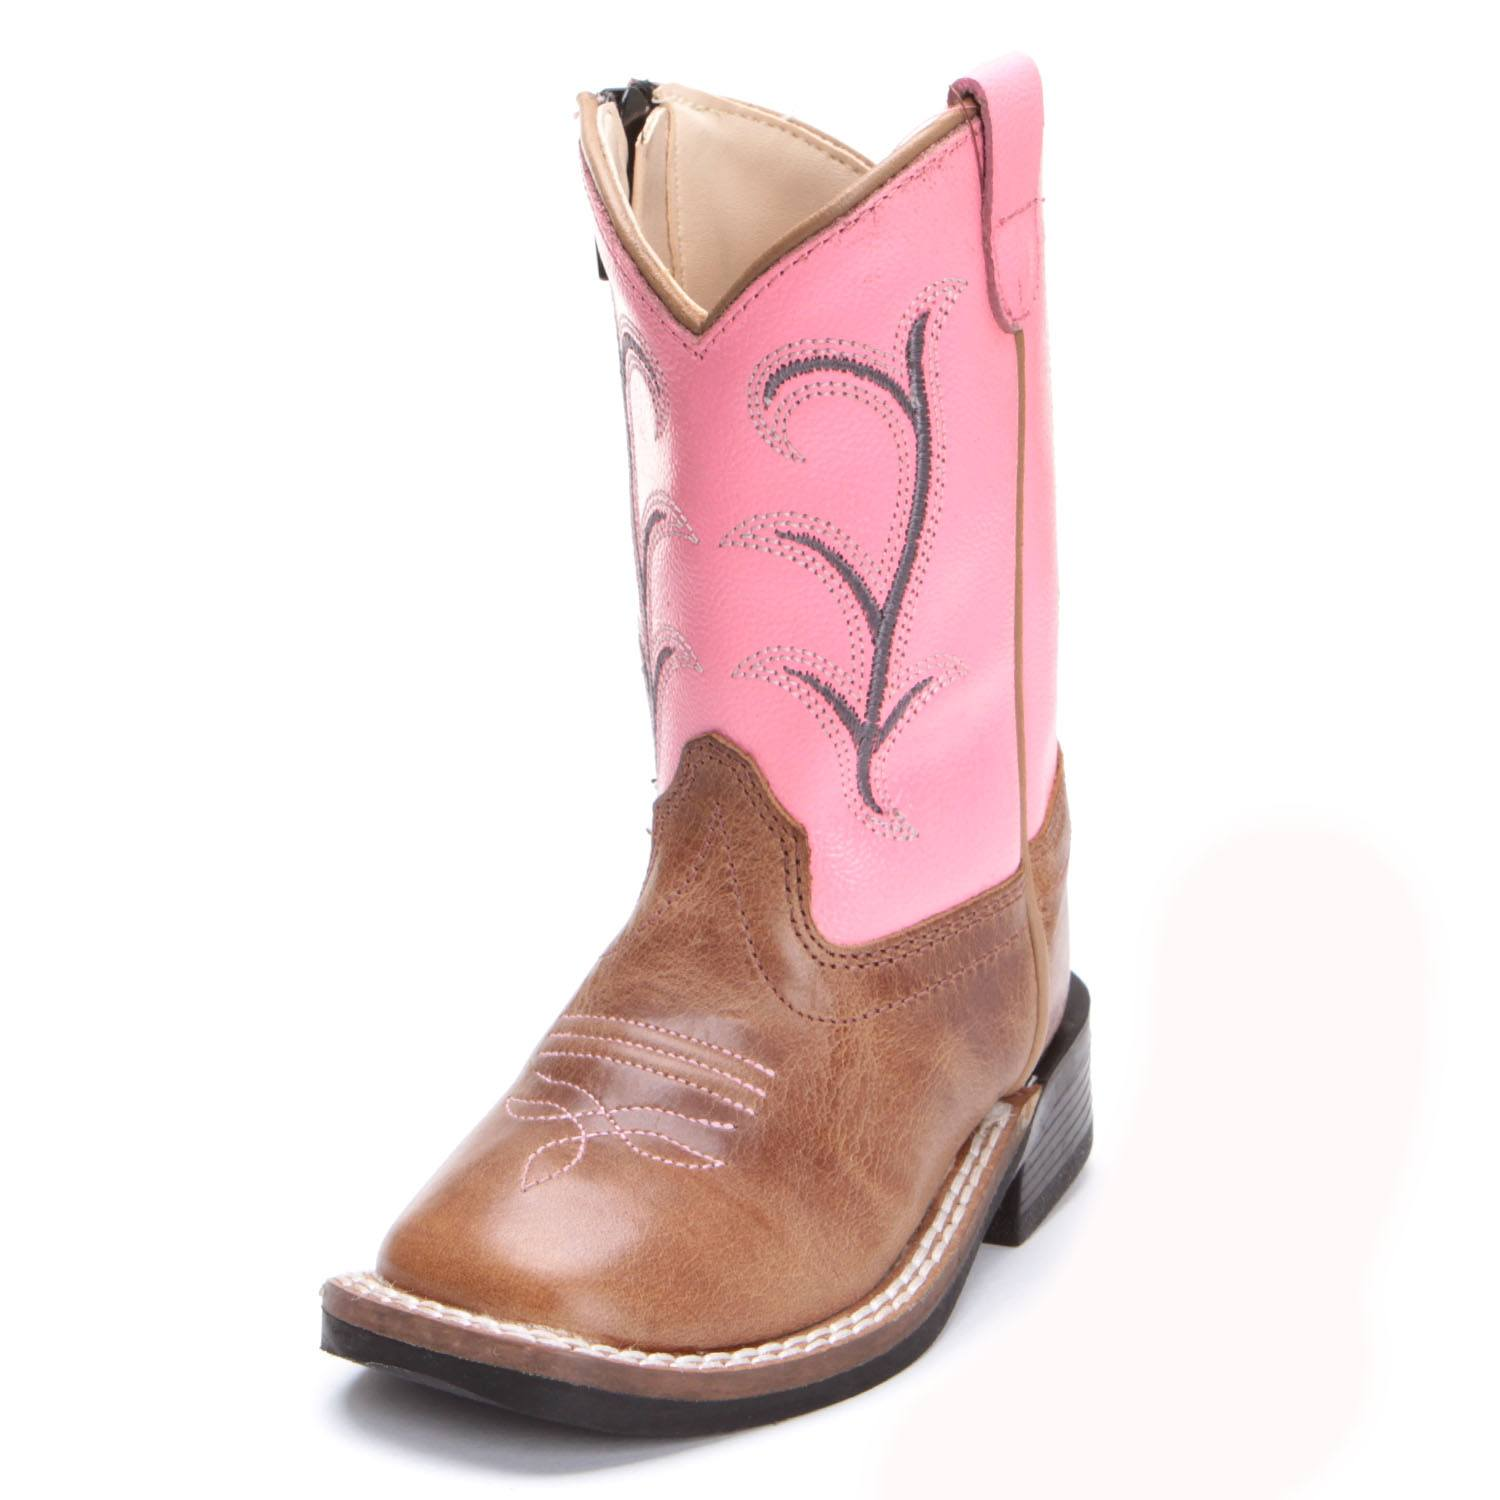 19db26eaa40 Old West Toddler Girls Zipper Distressed Cowboy Boots Pink